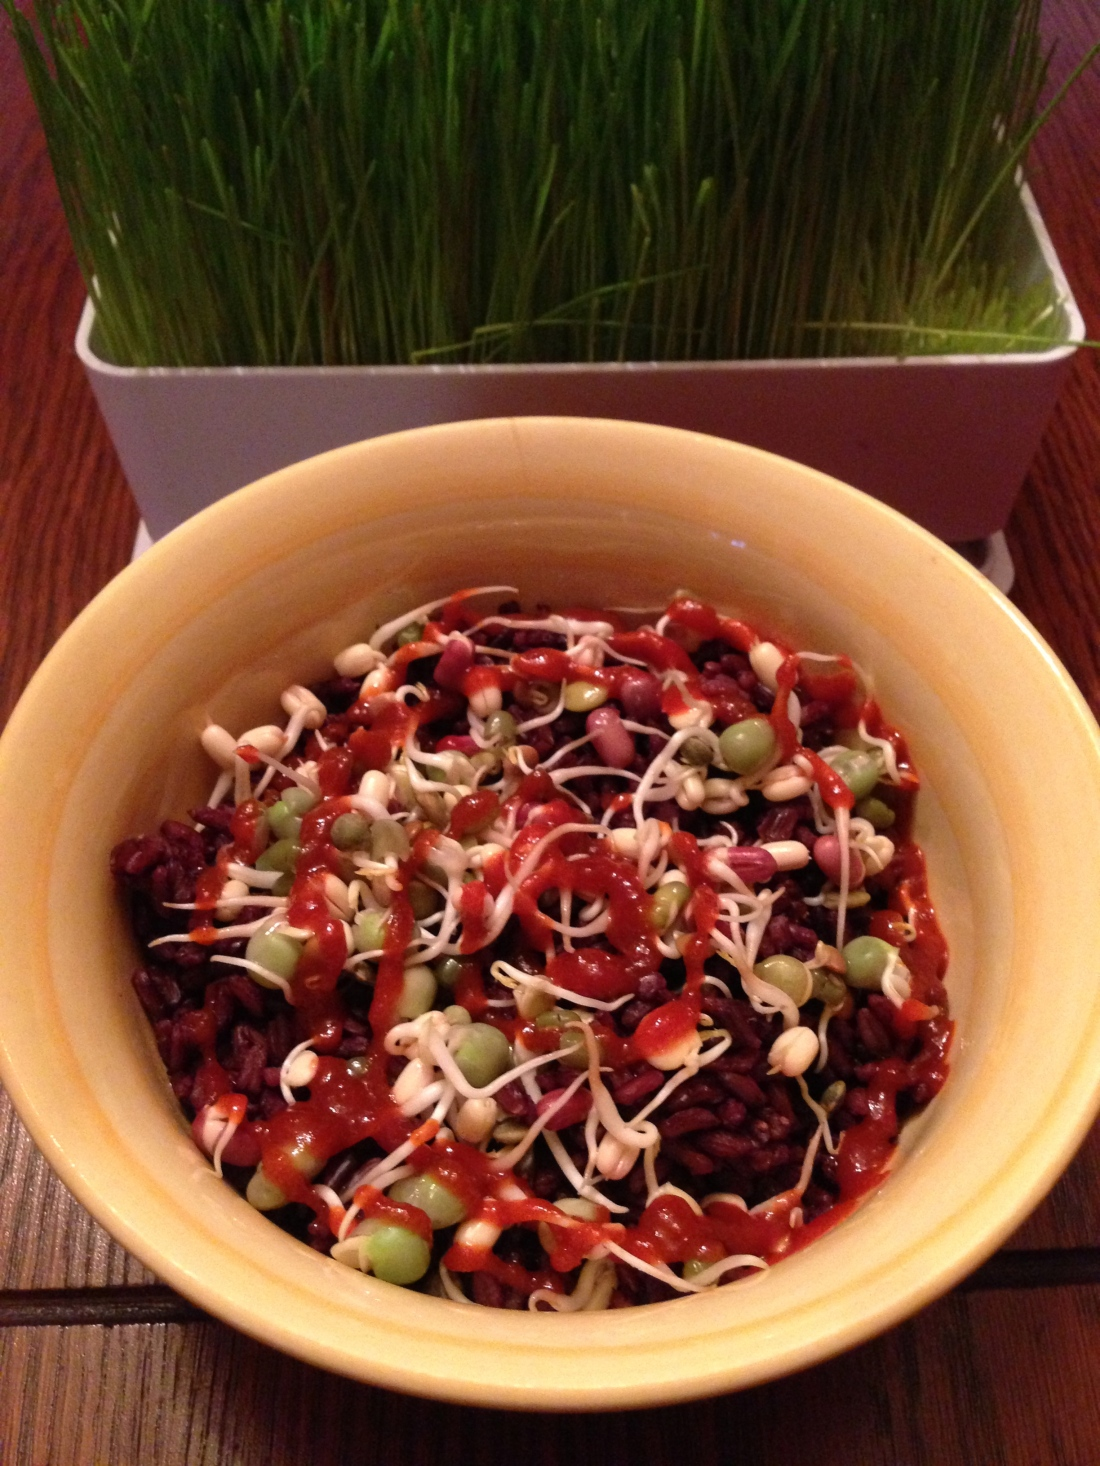 Black Rice, Bean Sprouts, Sriracha